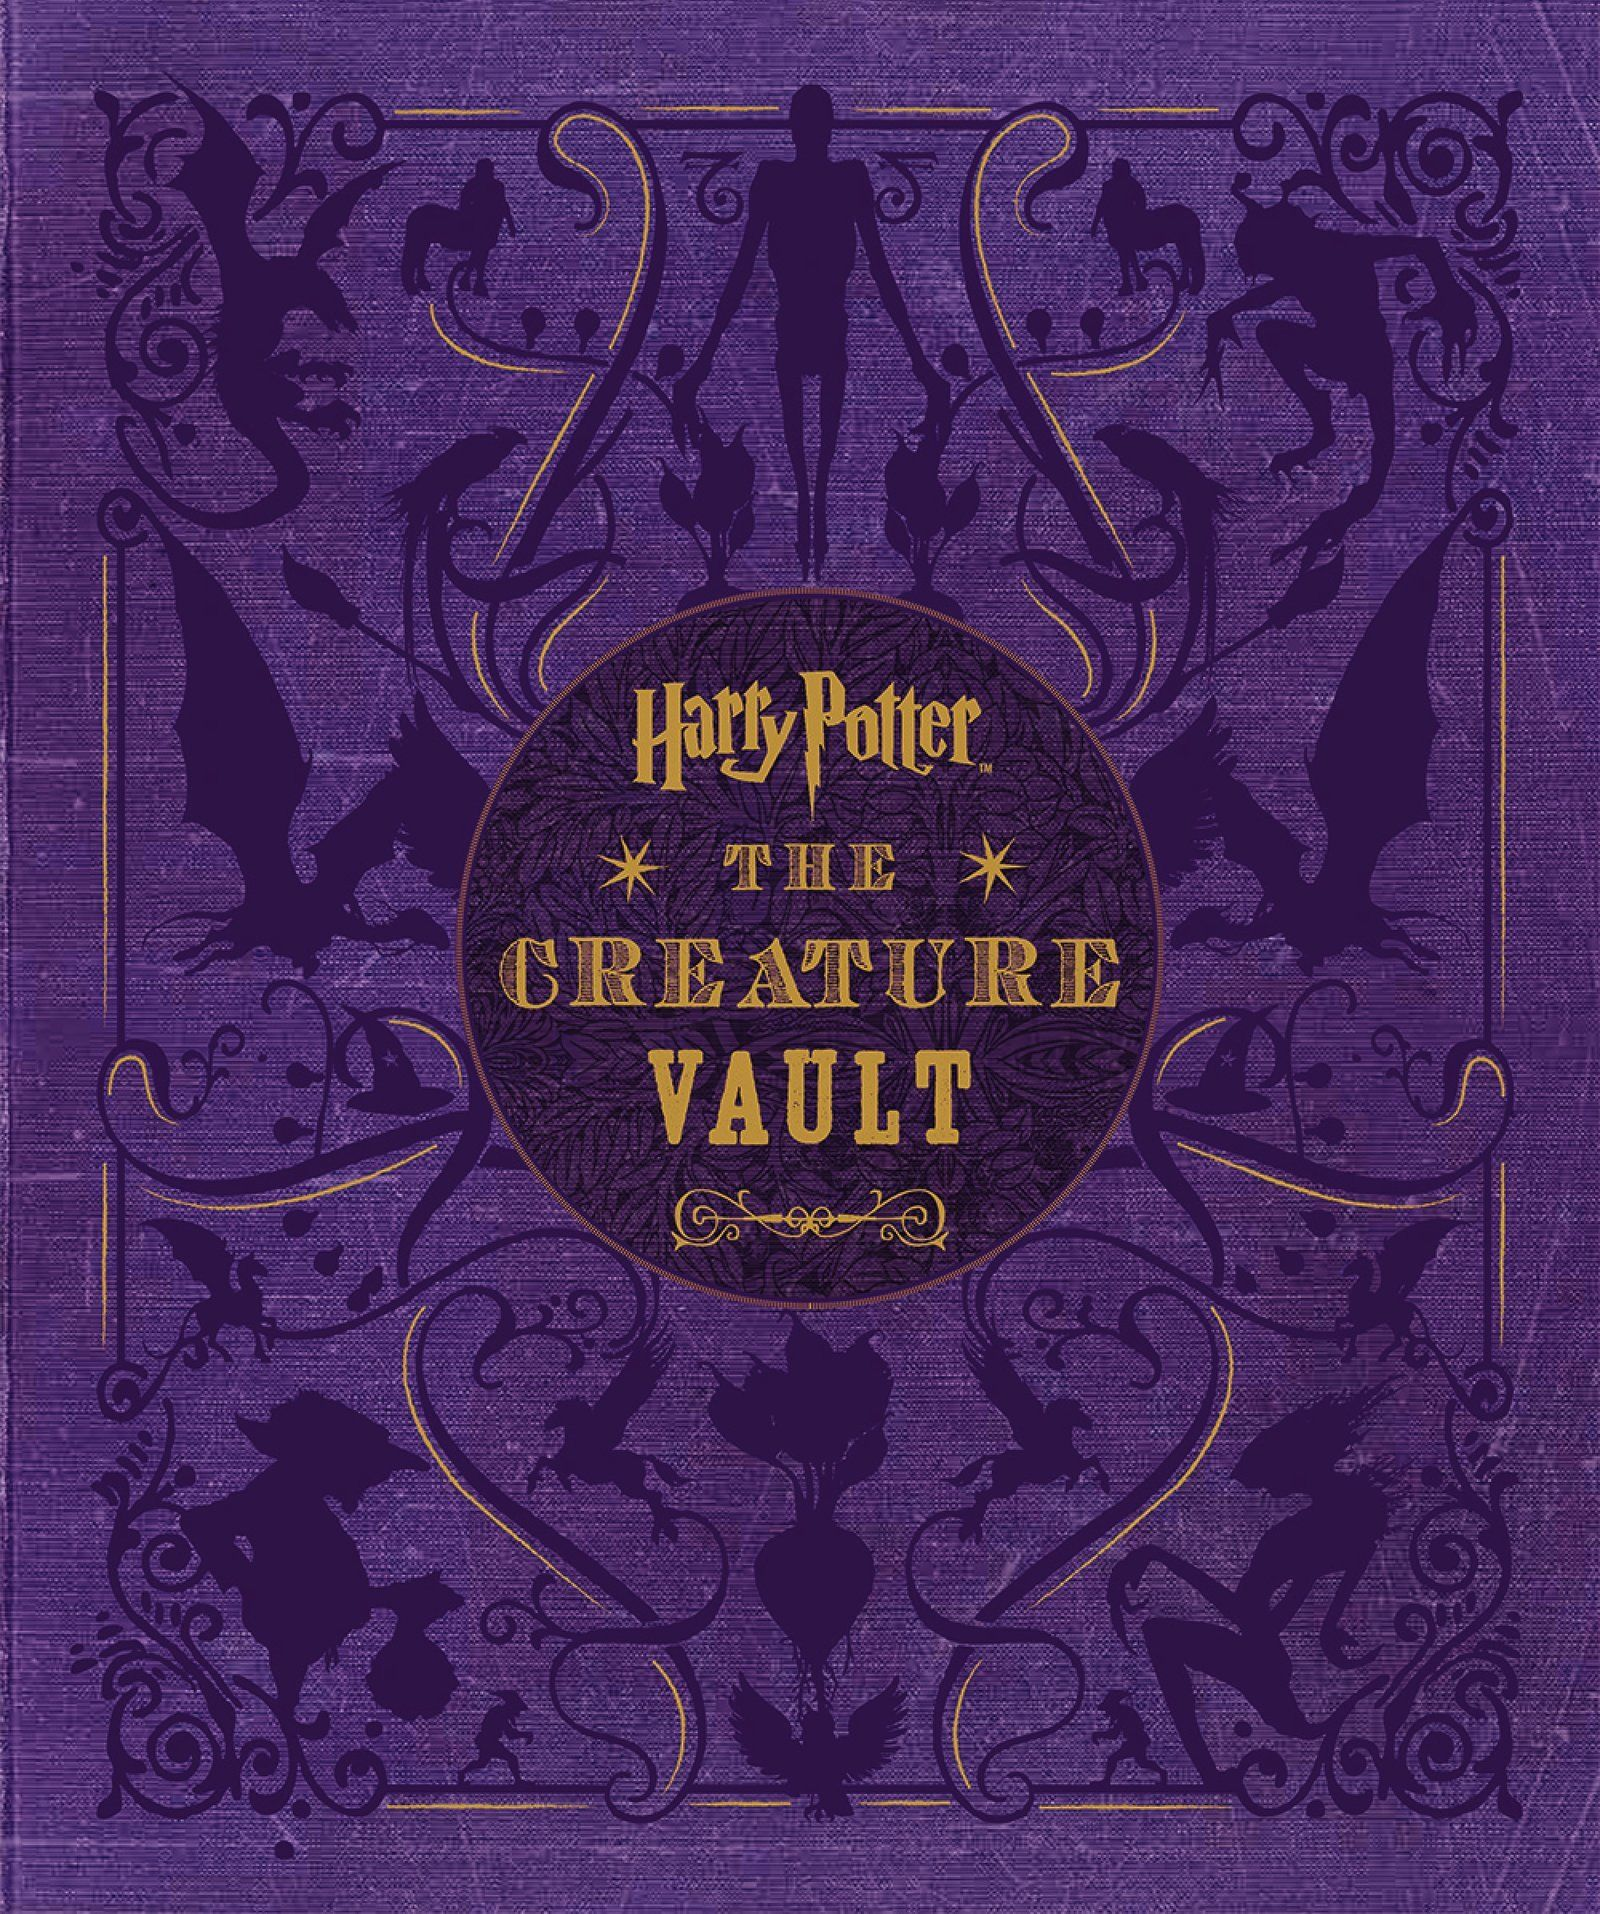 Comprar Libro Electronico De Tinta Electronica Harry Potter The Creature Vault The Creatures And Plants